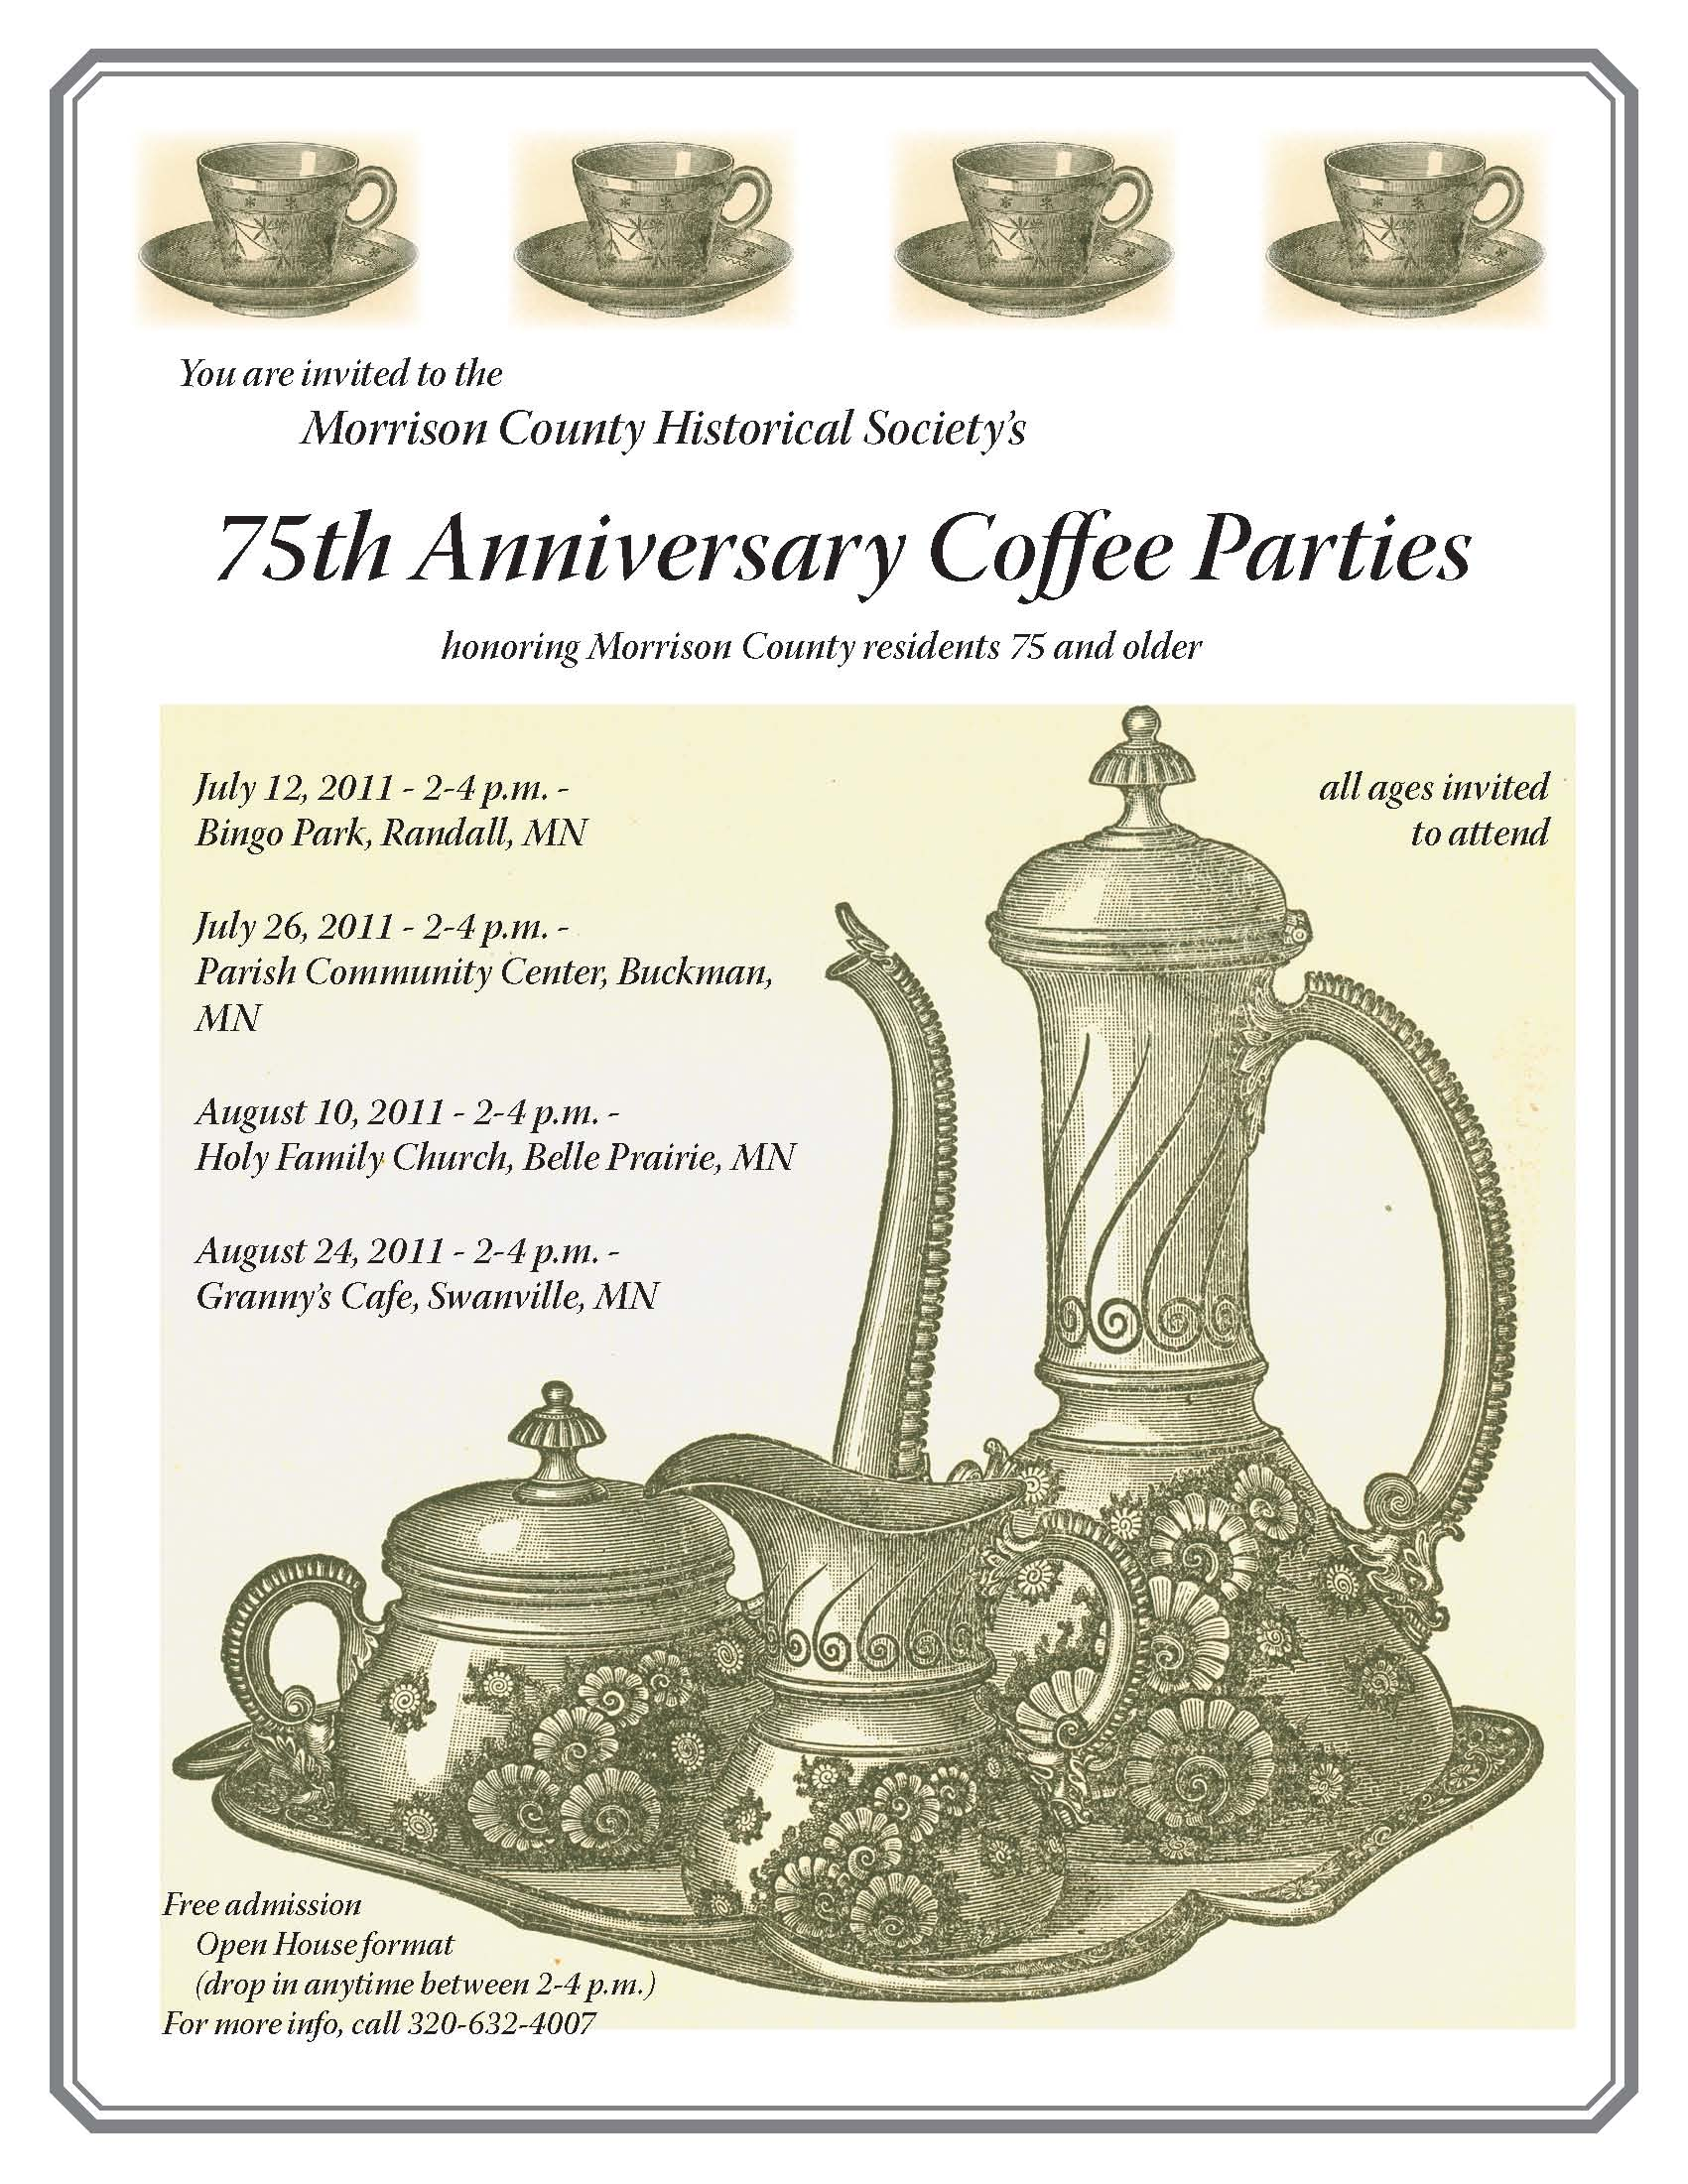 Morrison County Historical Society Coffee Party Flyer, 2011